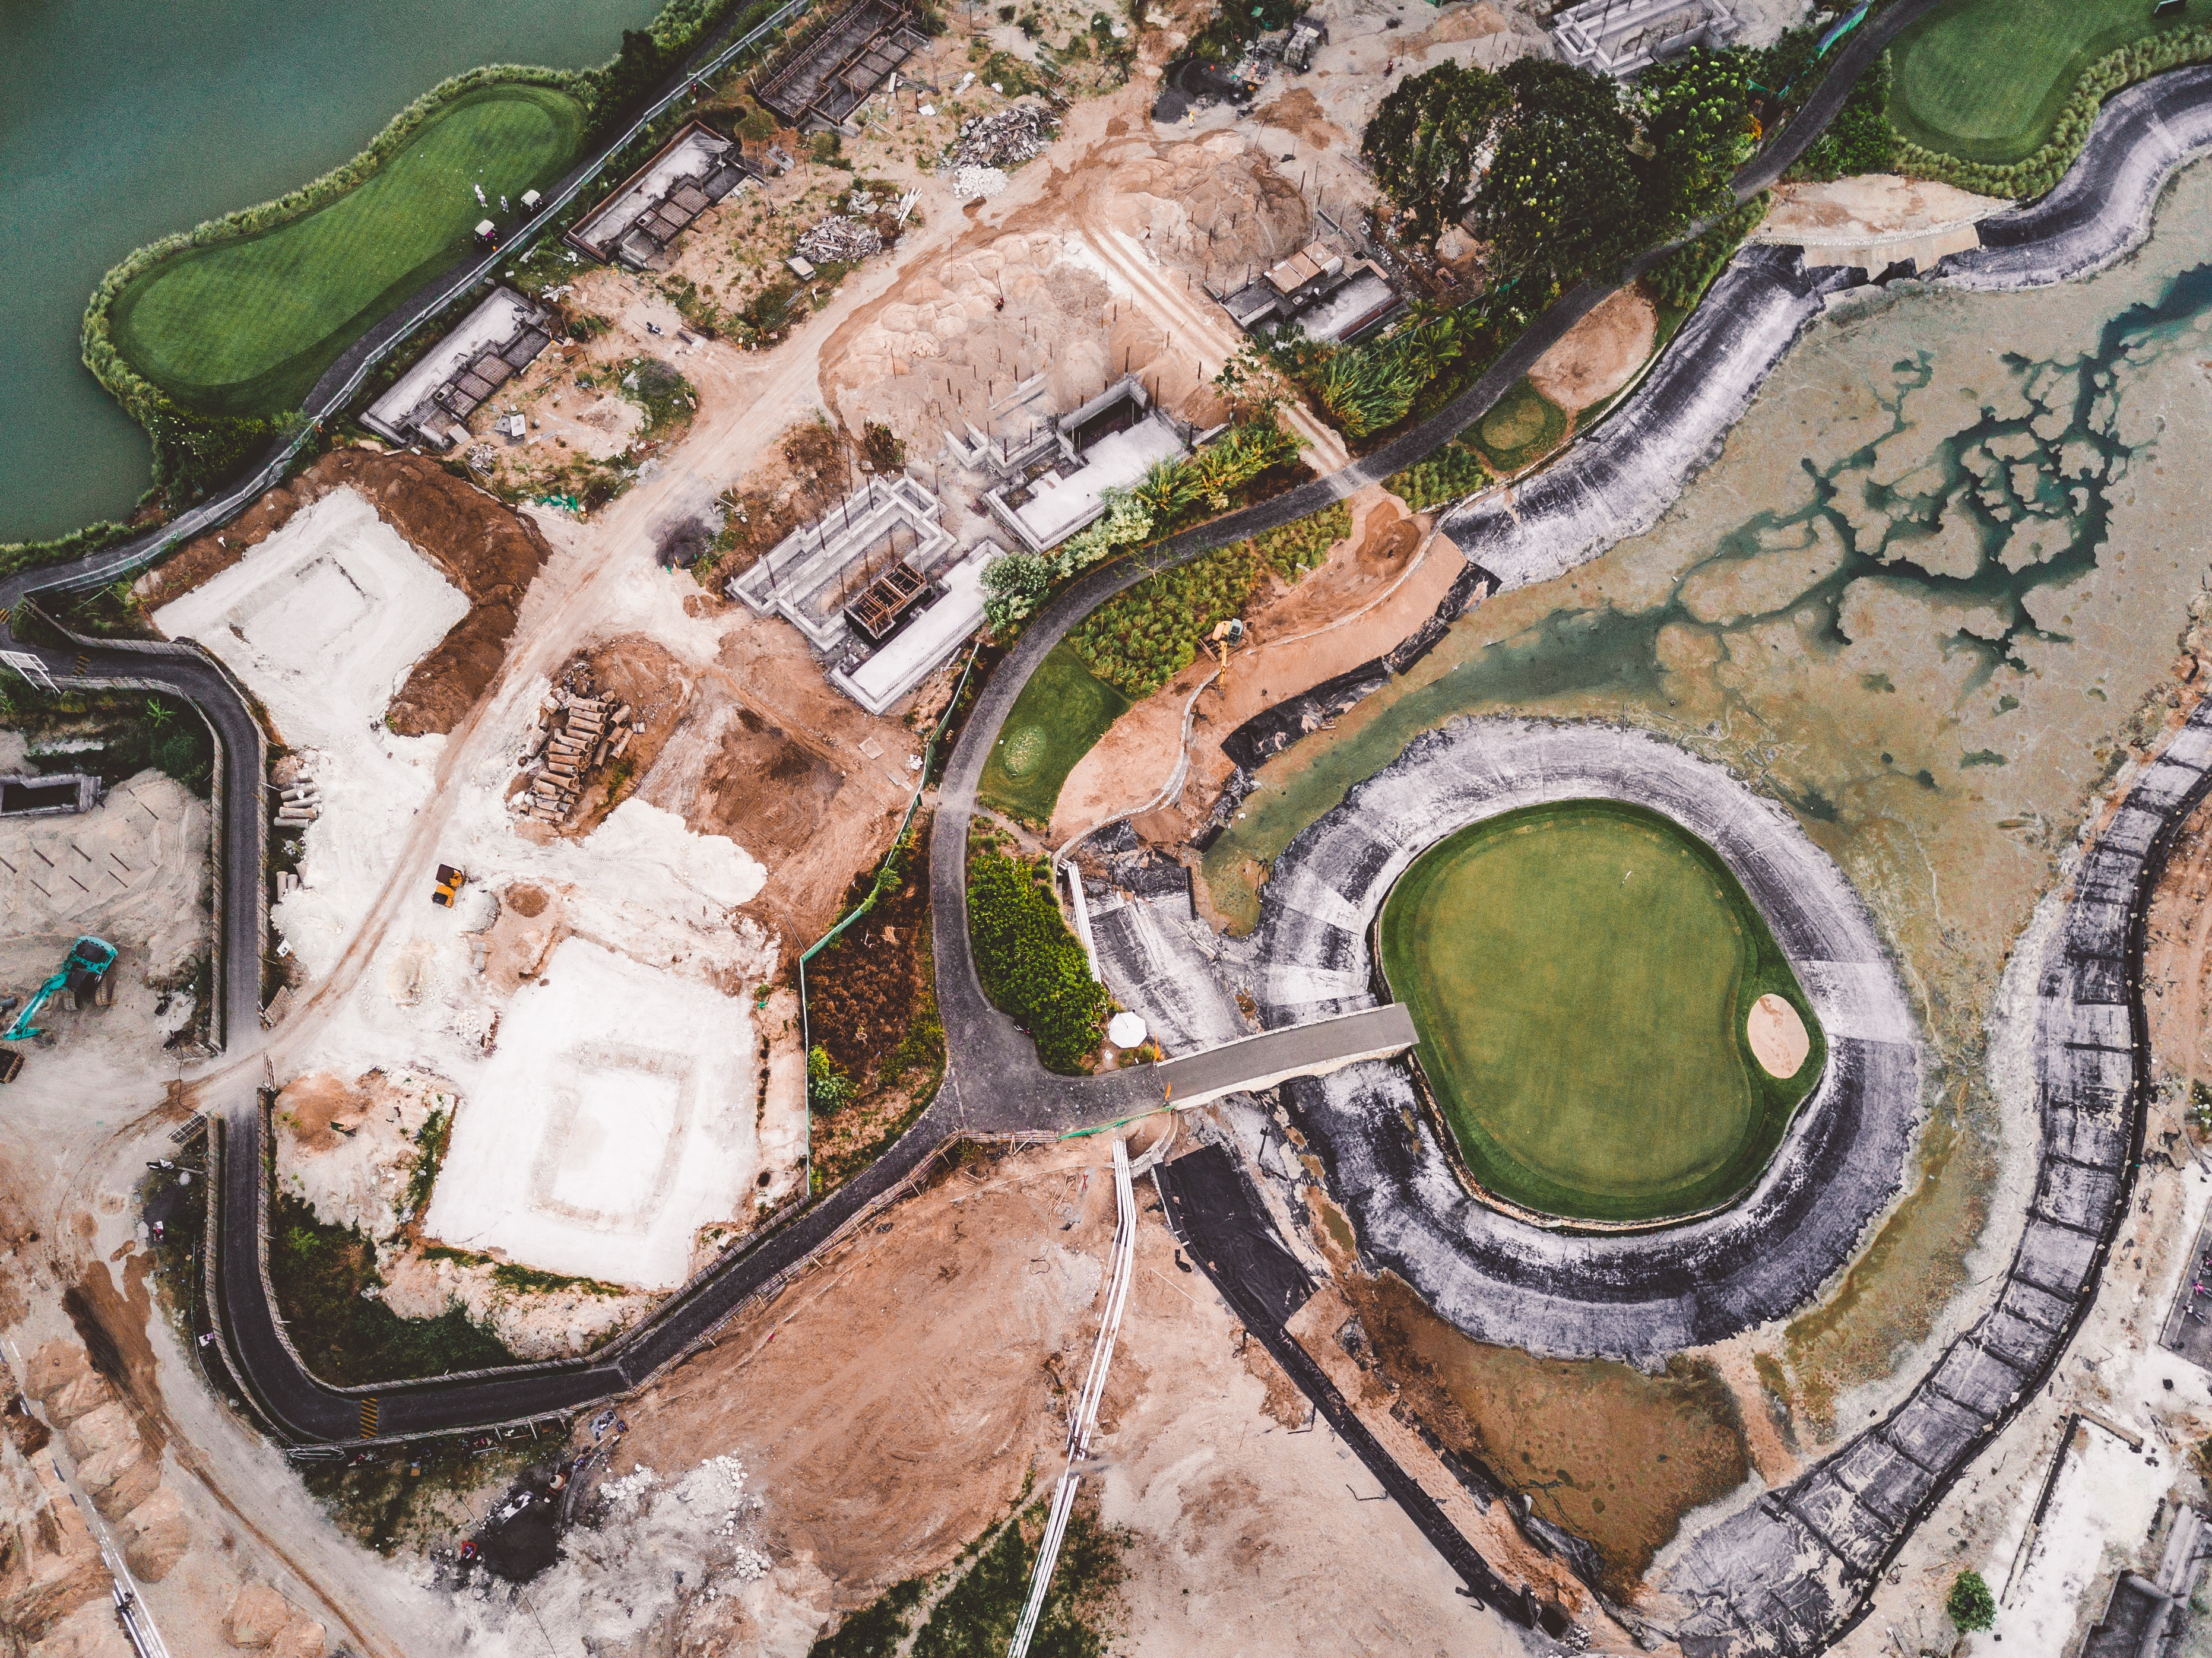 Aerial photography of land and body of water